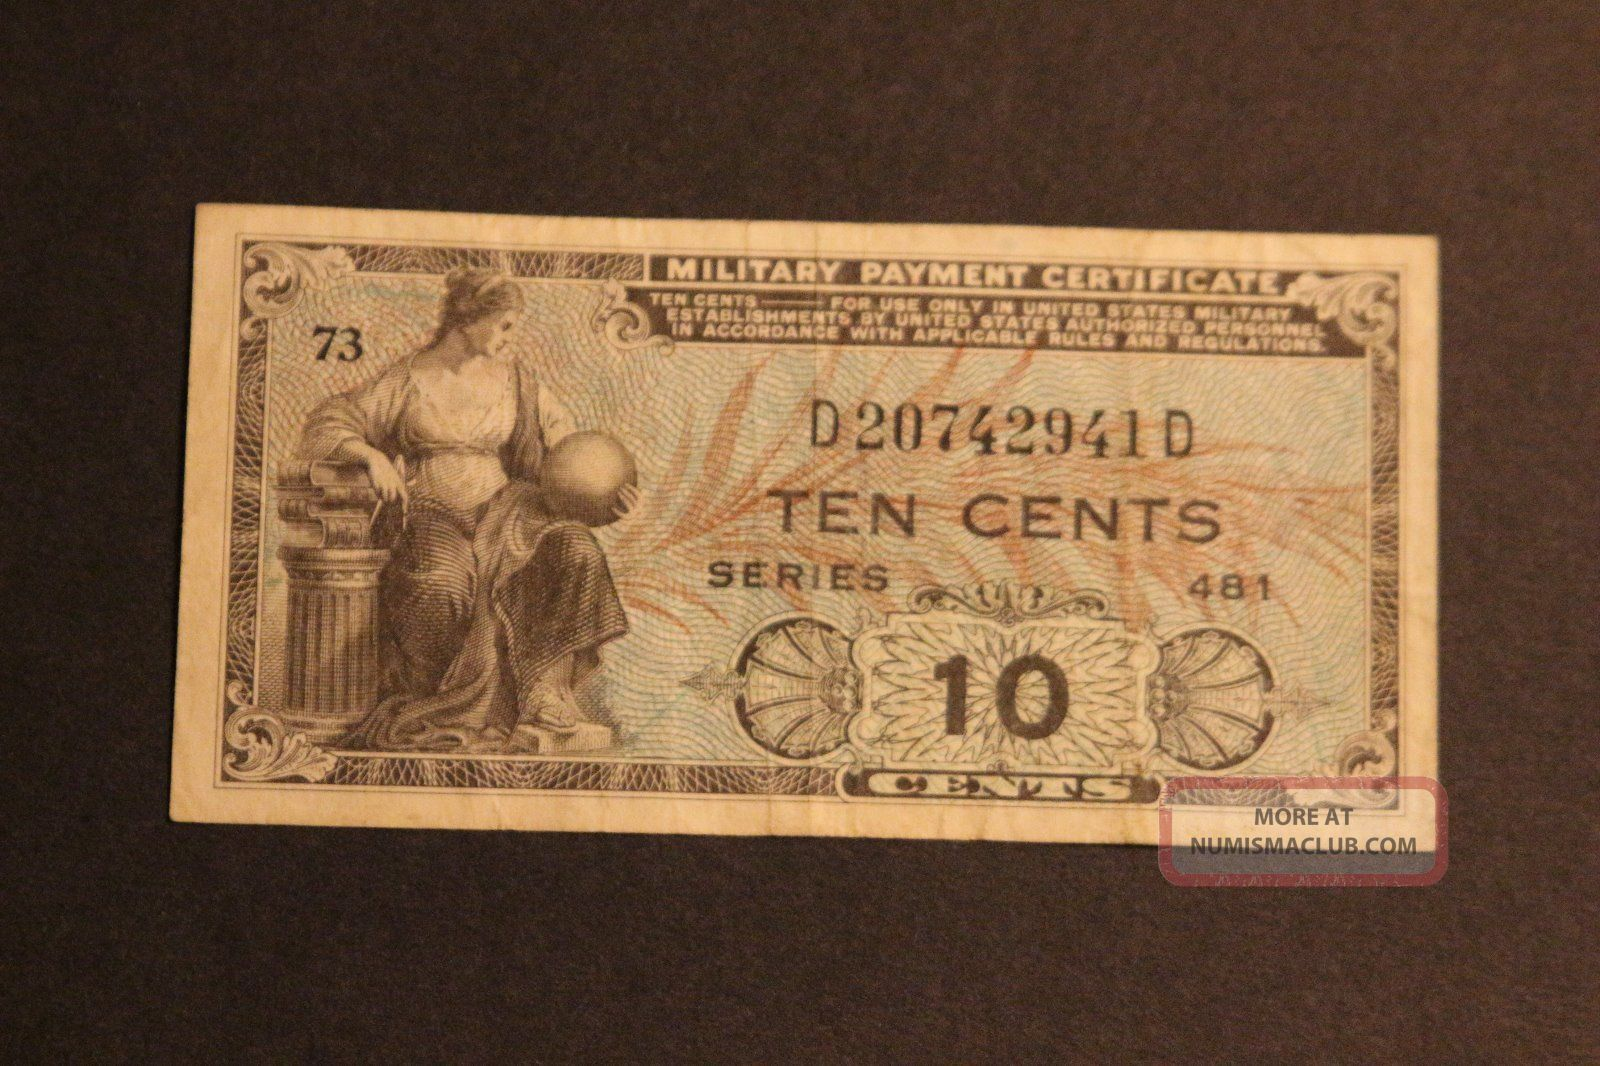 Us 10 Cents Military Payment Certificate Series 481 Vf Circulated Note